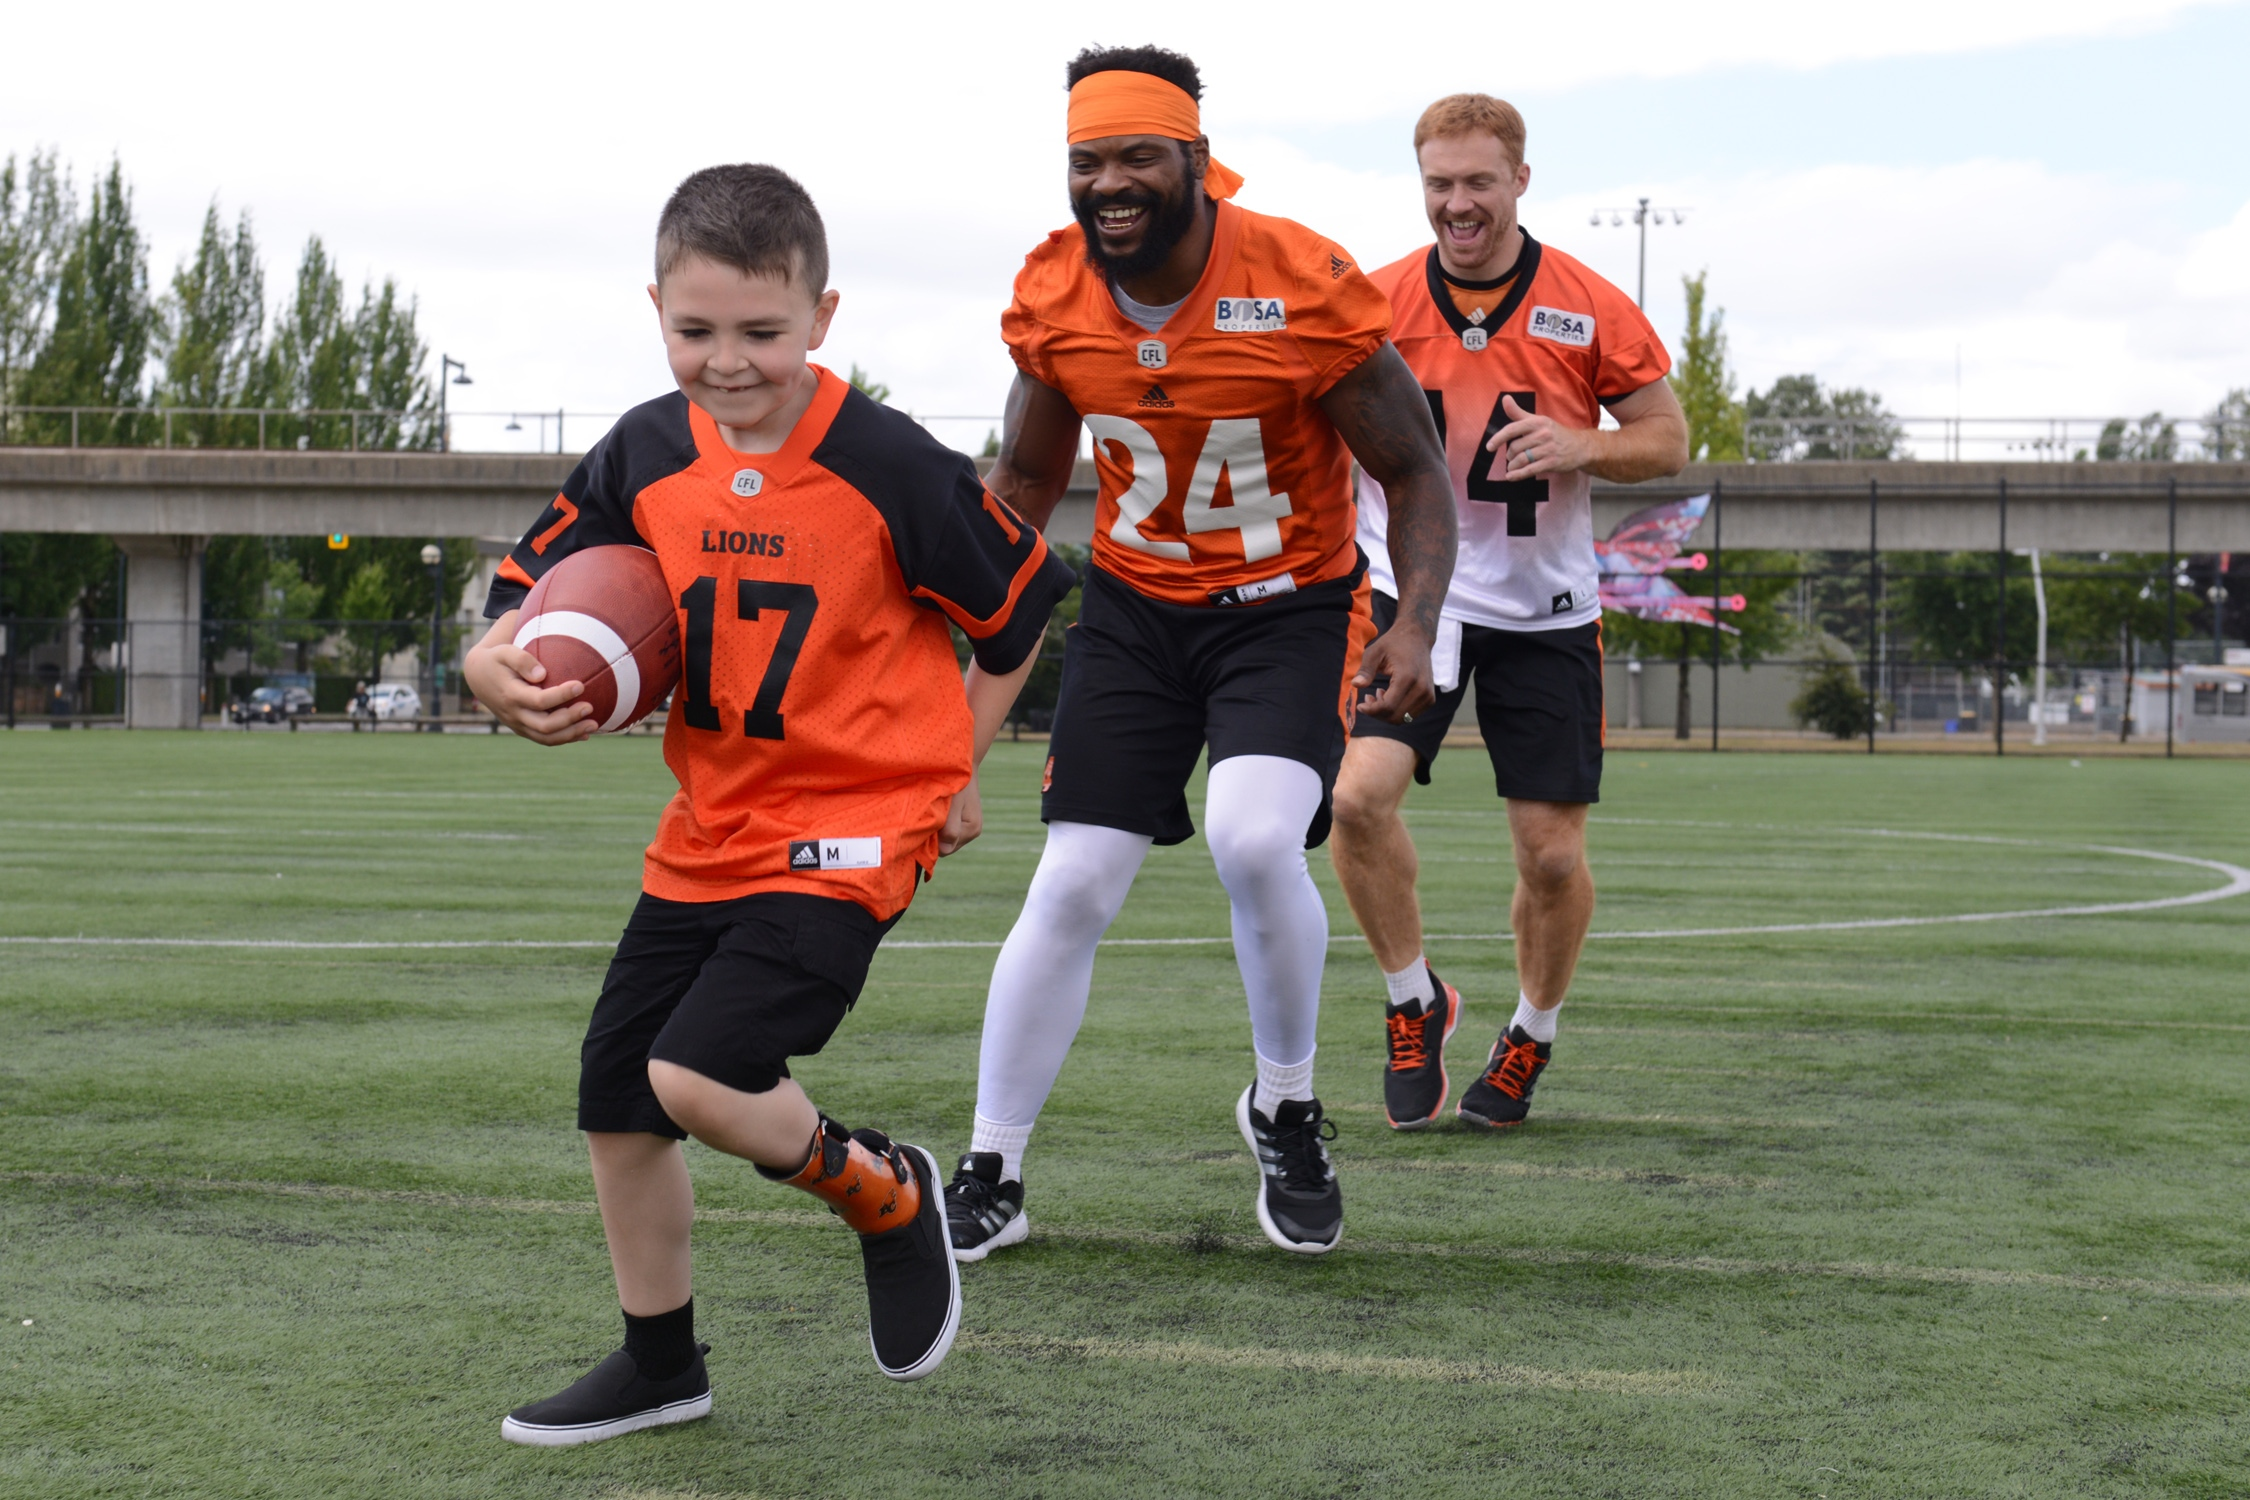 Darevin having fun on the shoot with players Travis Lulay (#14) and Jeremiah Johnson (#24).